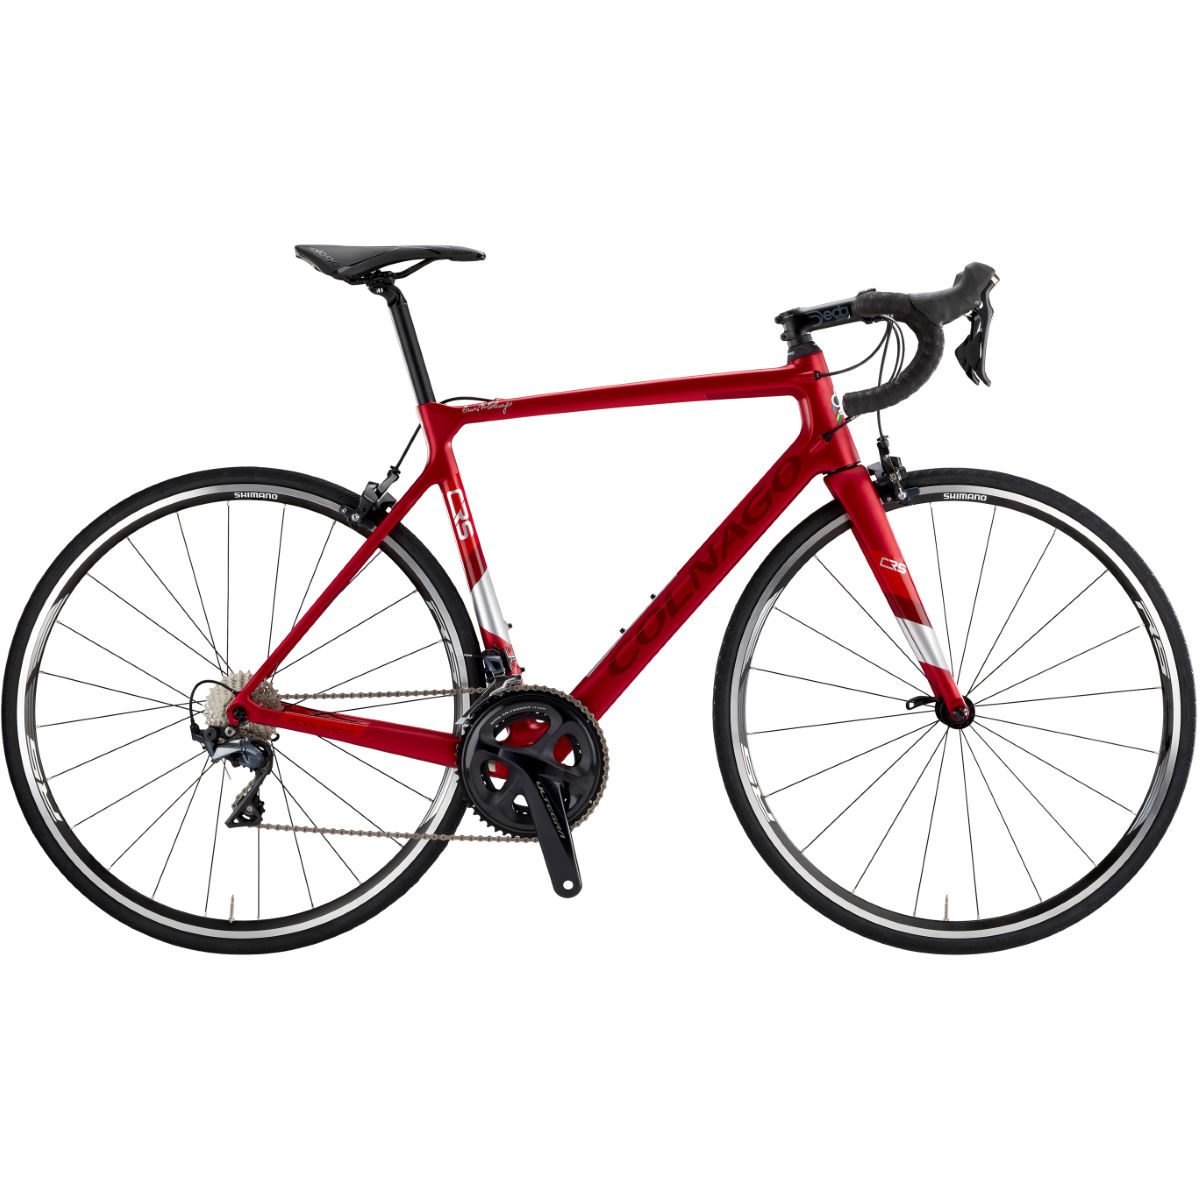 Image of Vélo de route Colnago CRS (Ultegra, 2019) - 50cm Satin Pearl Red